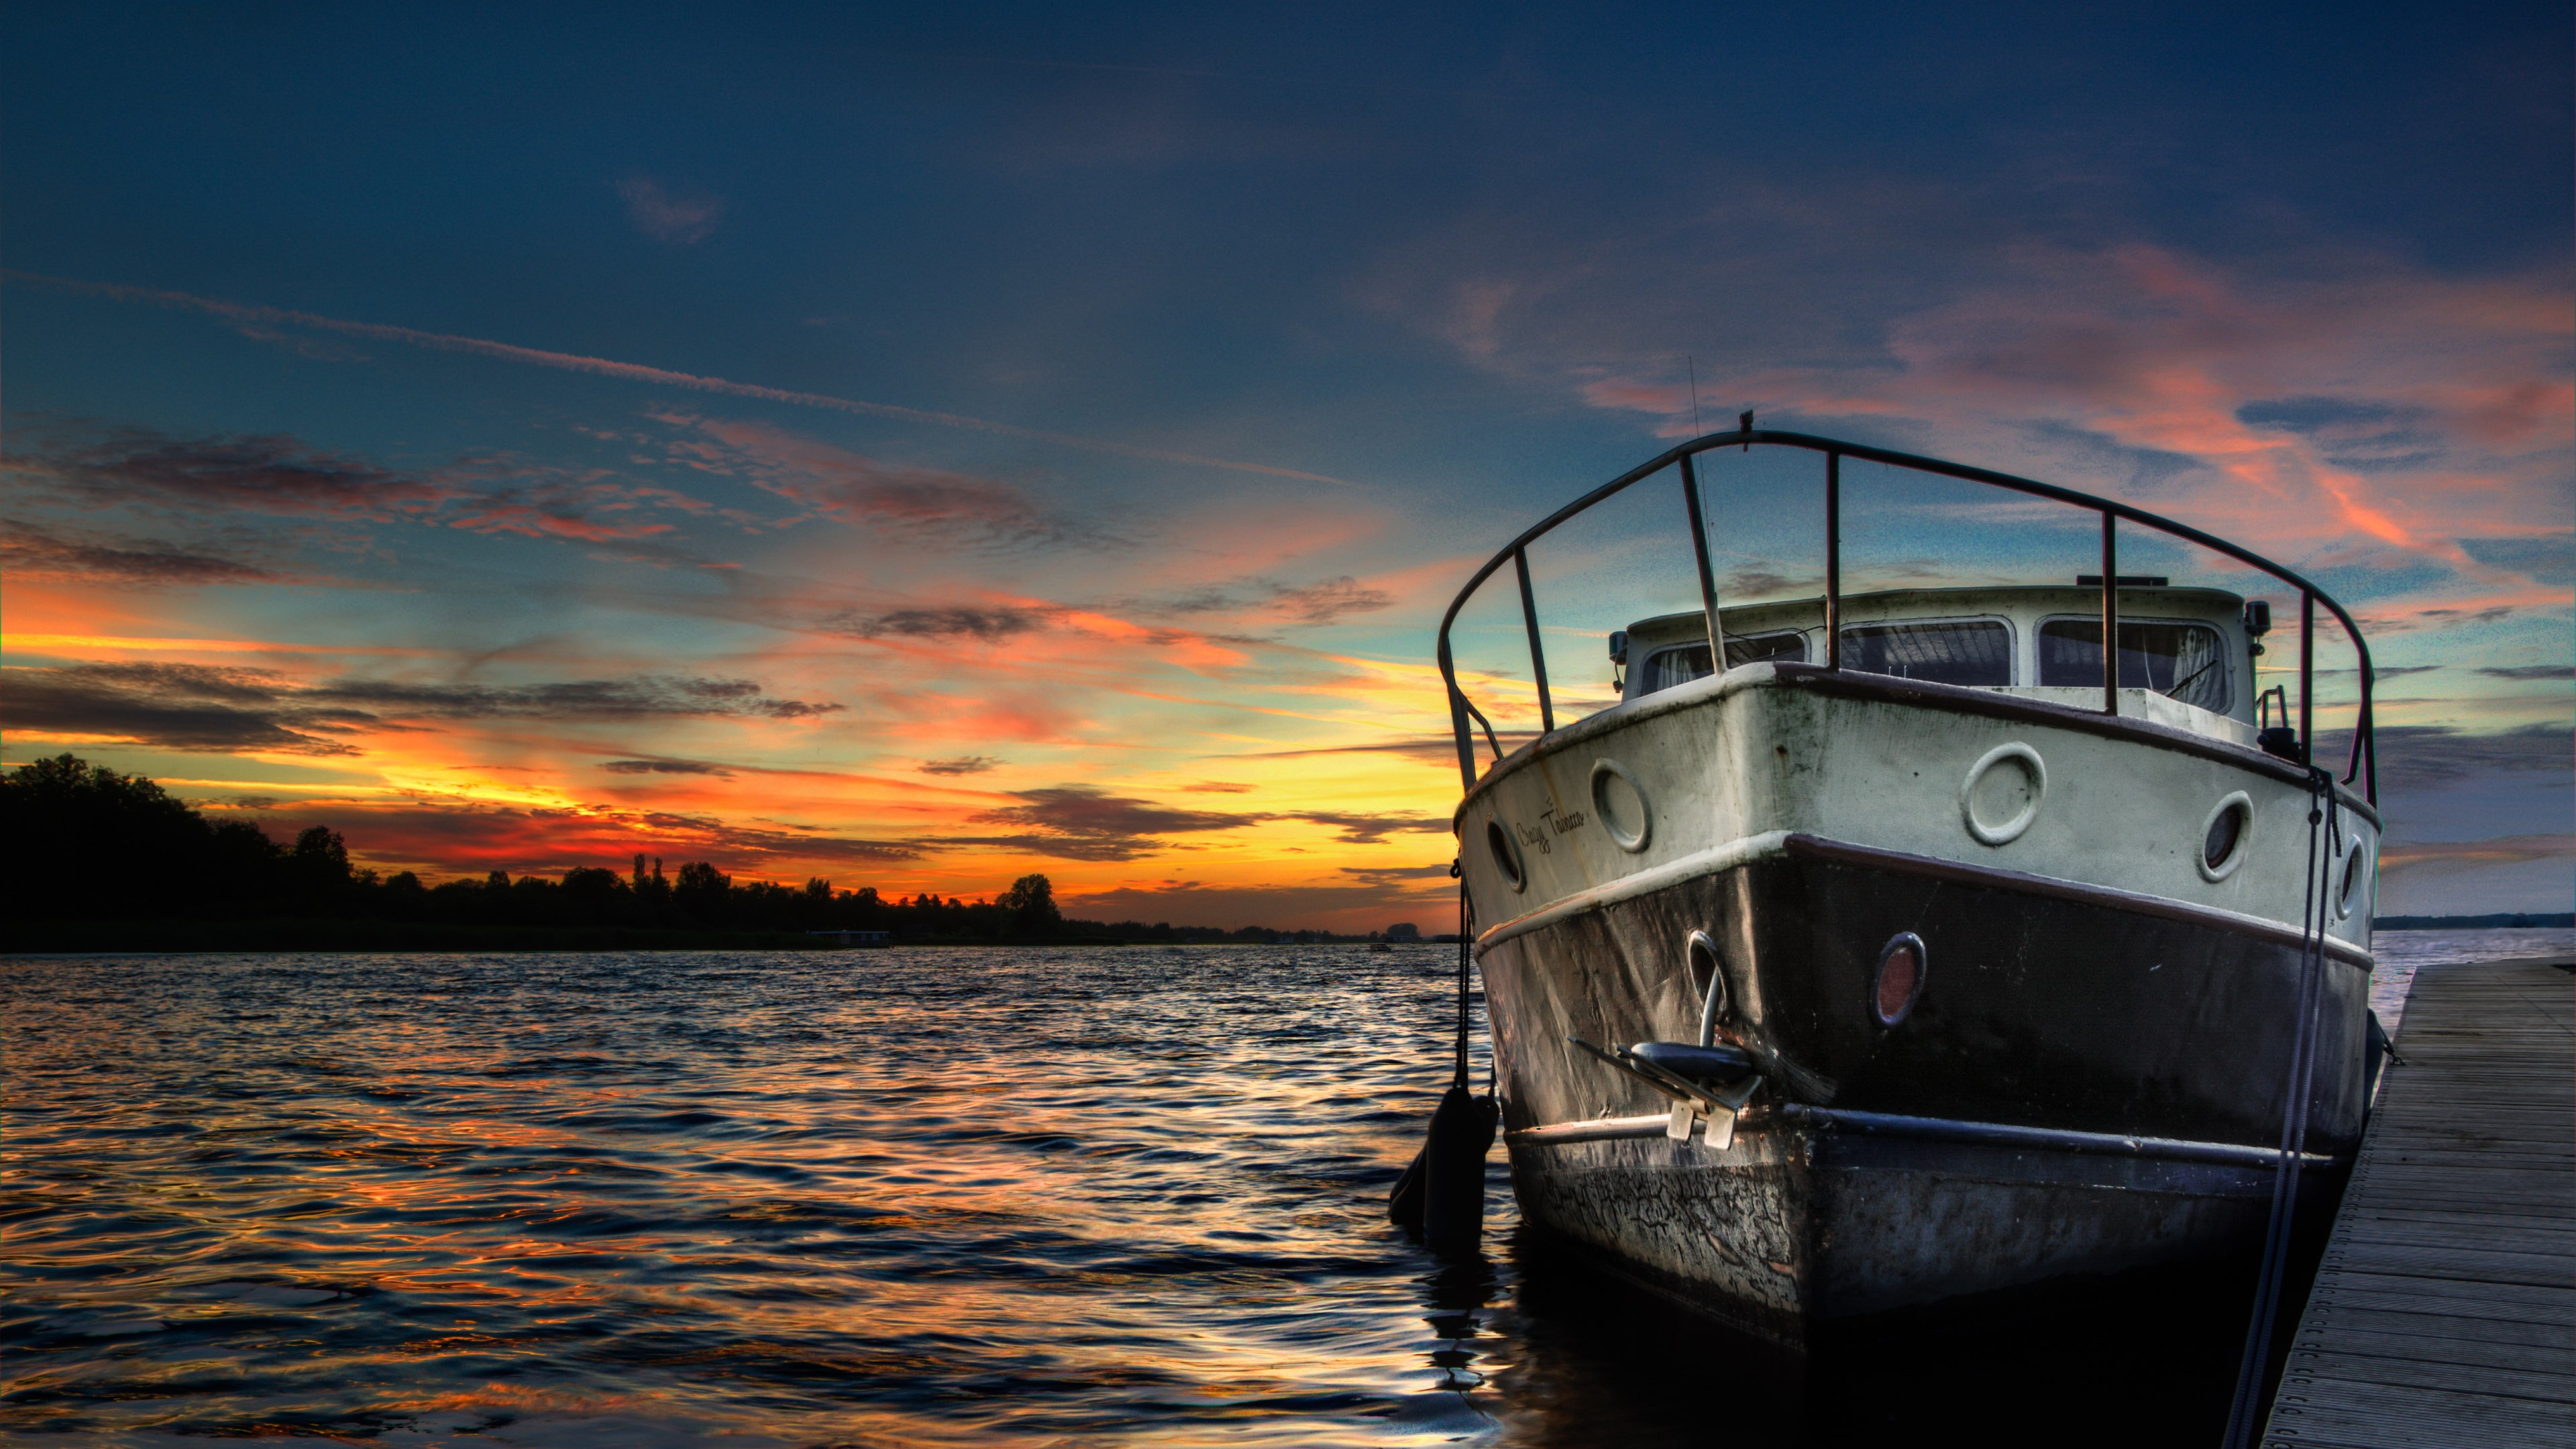 Boat and sunset in background wallpaper 3840x2160